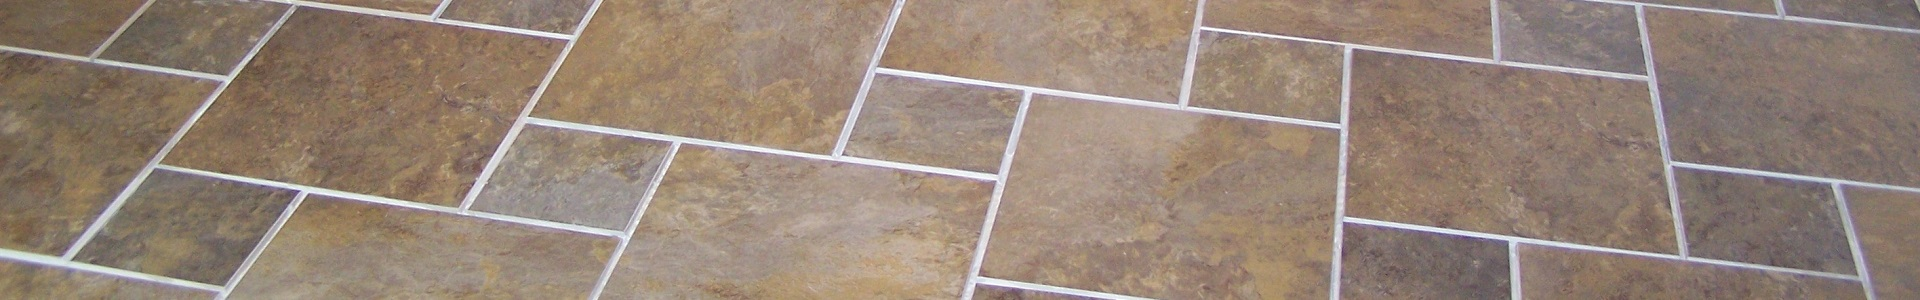 h2odryouttile and grout cleaning h2odryout